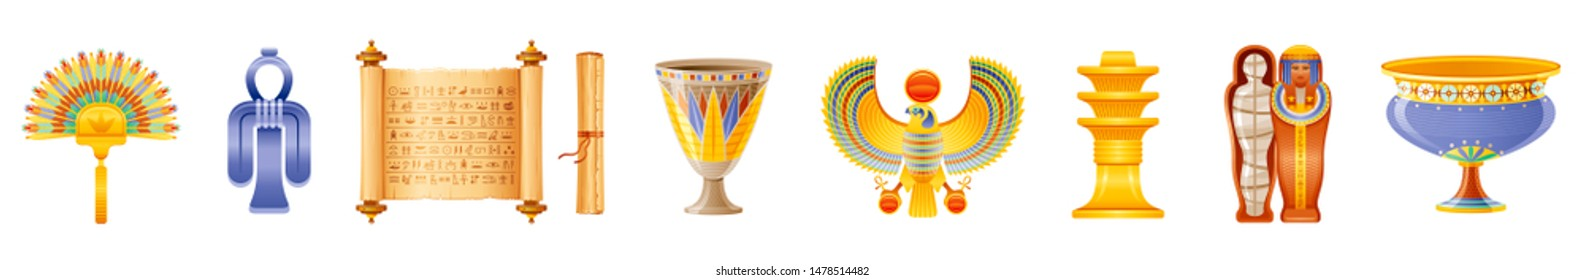 Ancient Egyptian art icon set. God, goddess, pharaoh symbol & amulet. Fan, Isis tyet knot, papyrus scroll, cup, falcon, djed, queen mummy sarcophagus, vase. 3d vector illustration isolated background